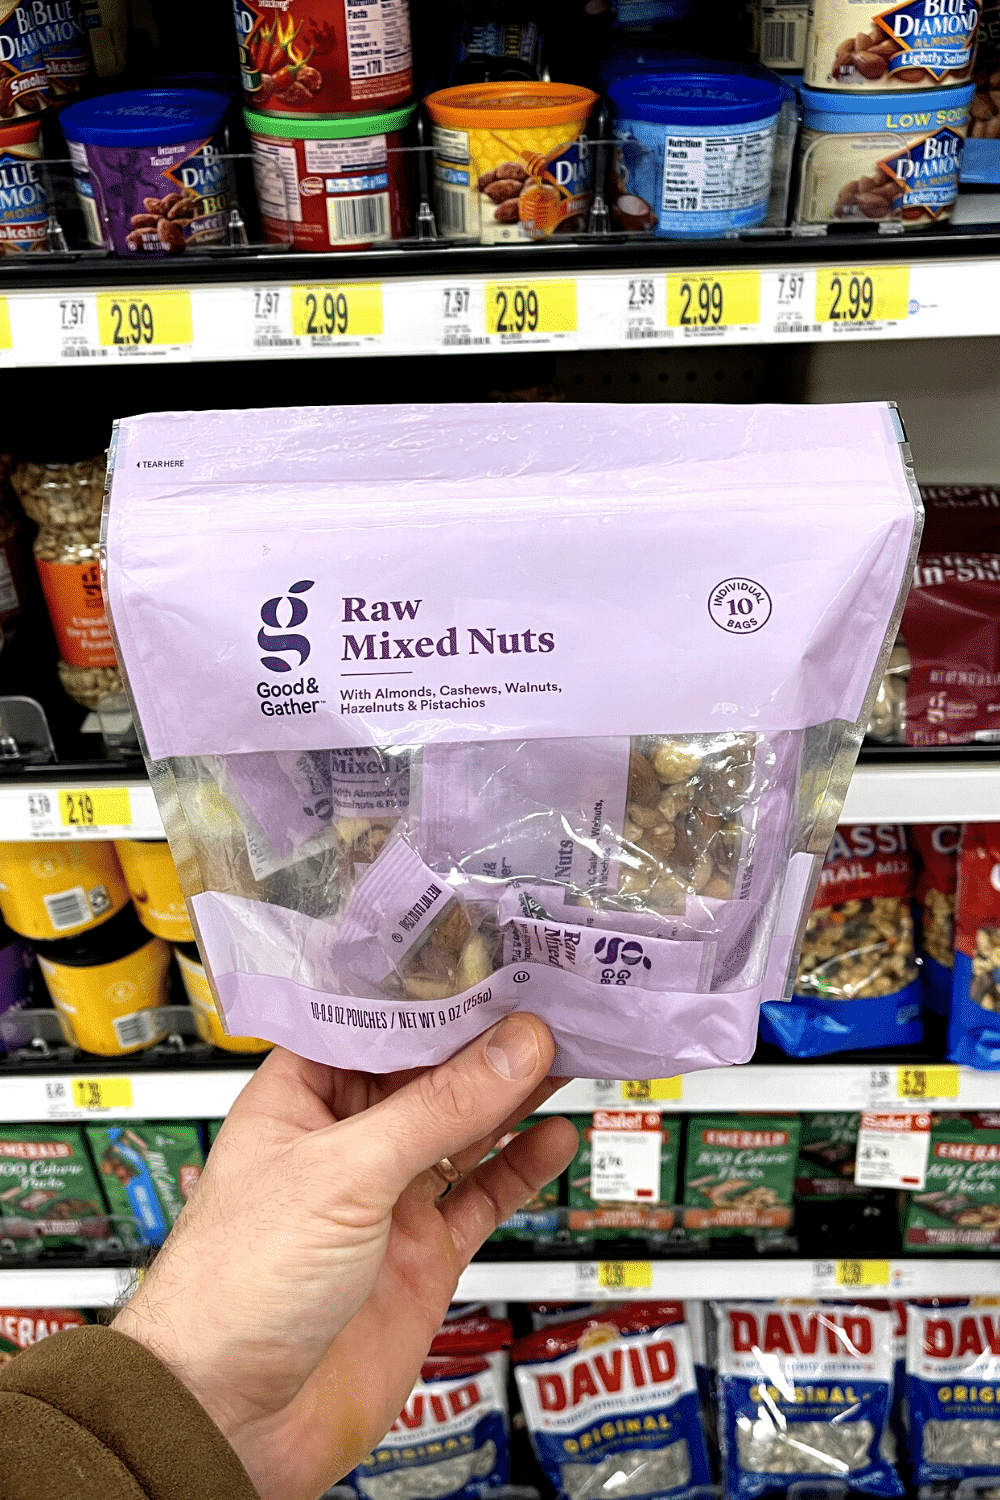 A hand holding a package of raw mixed nut snack packs.